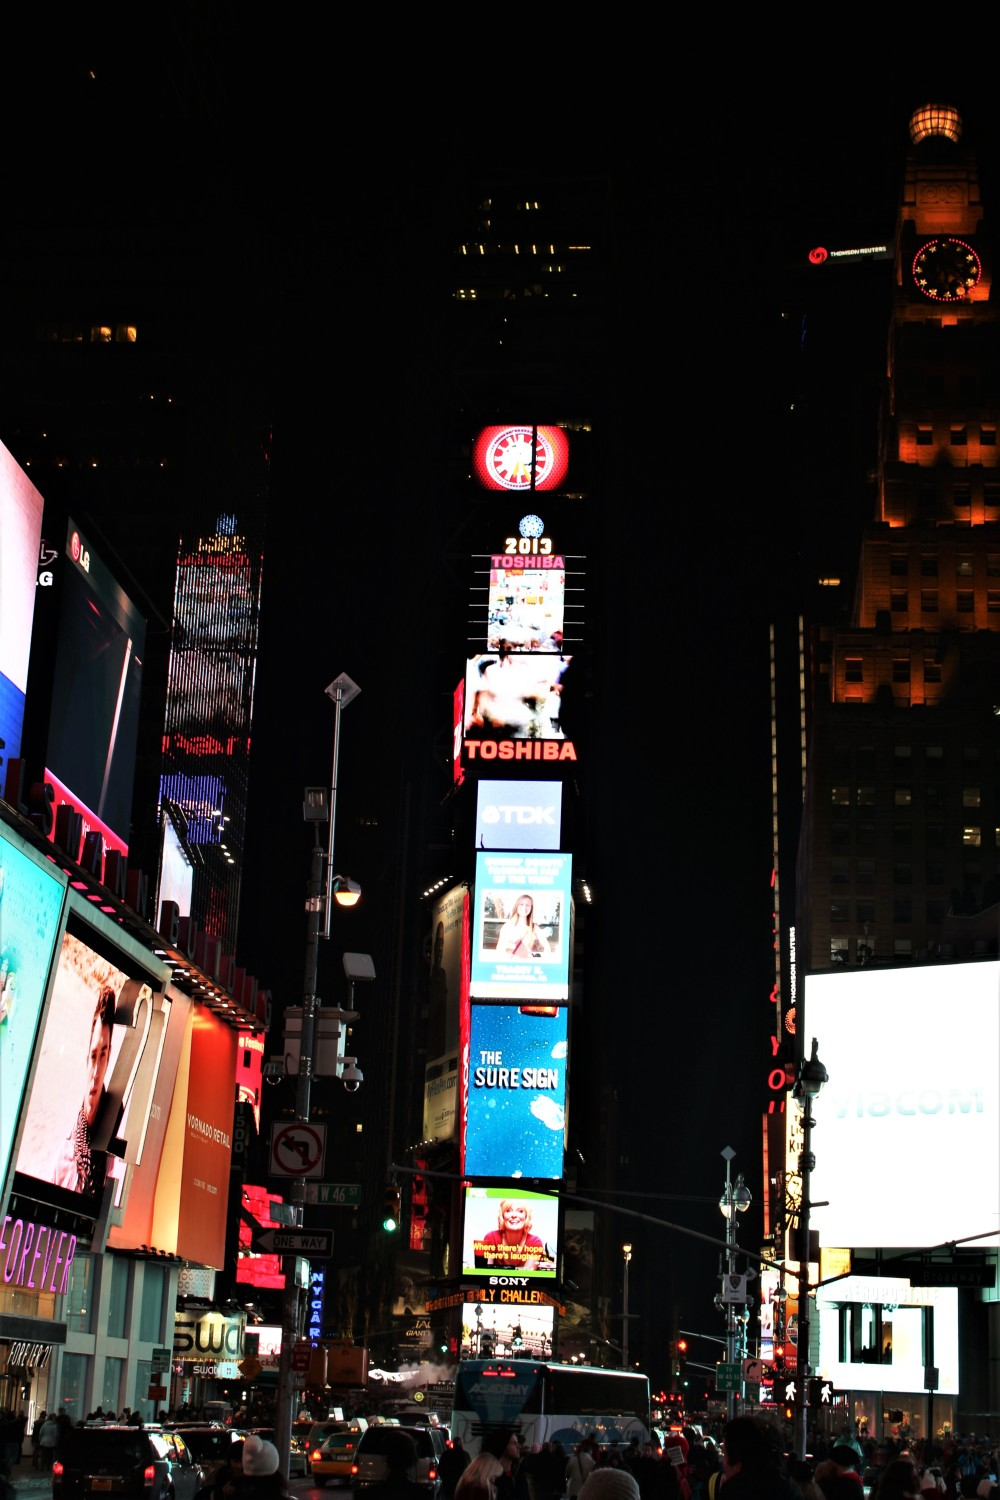 NYC - Times Square by Night